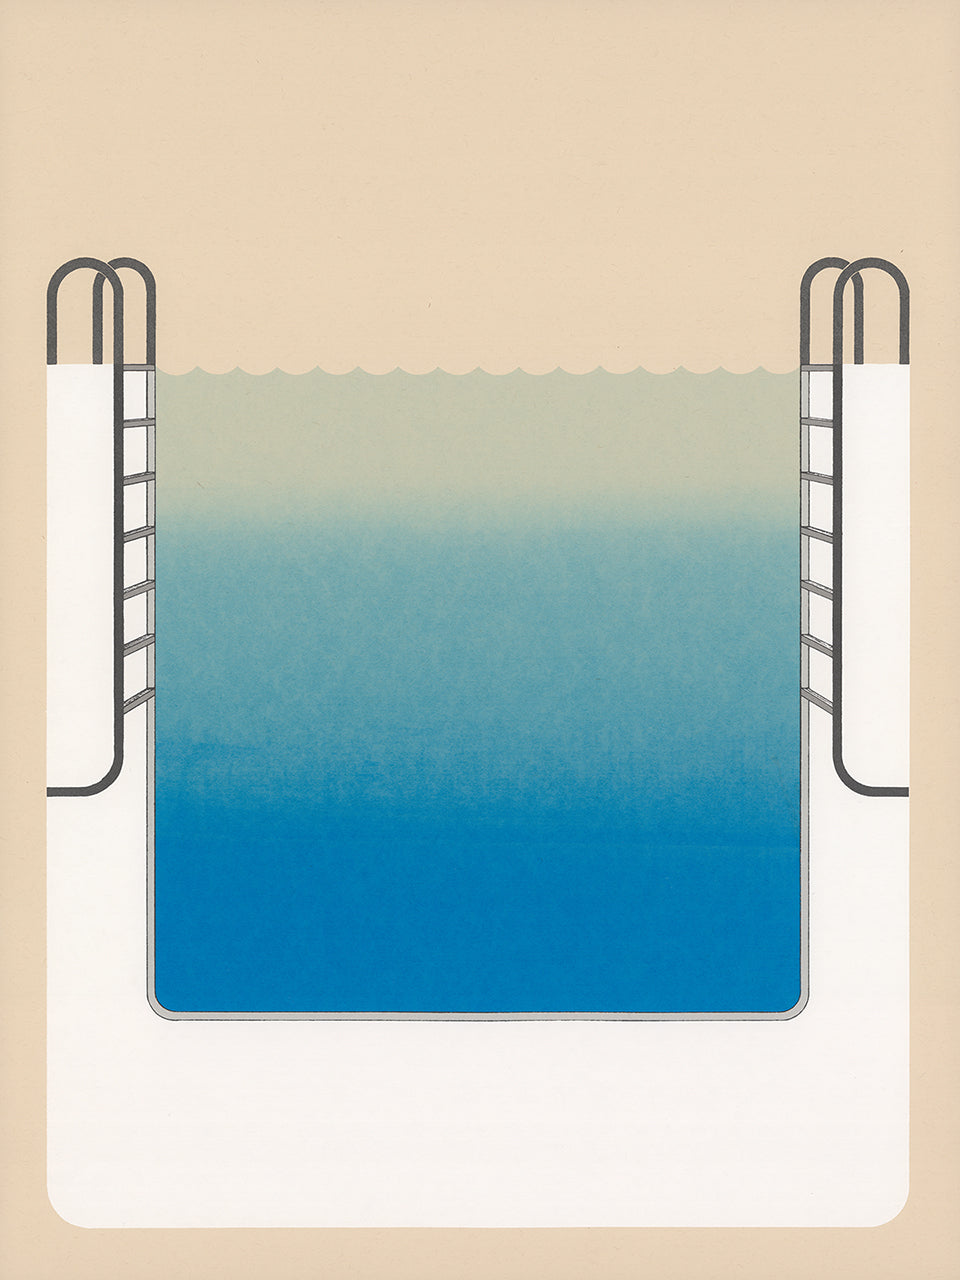 Kristen Martincic: Square Pool